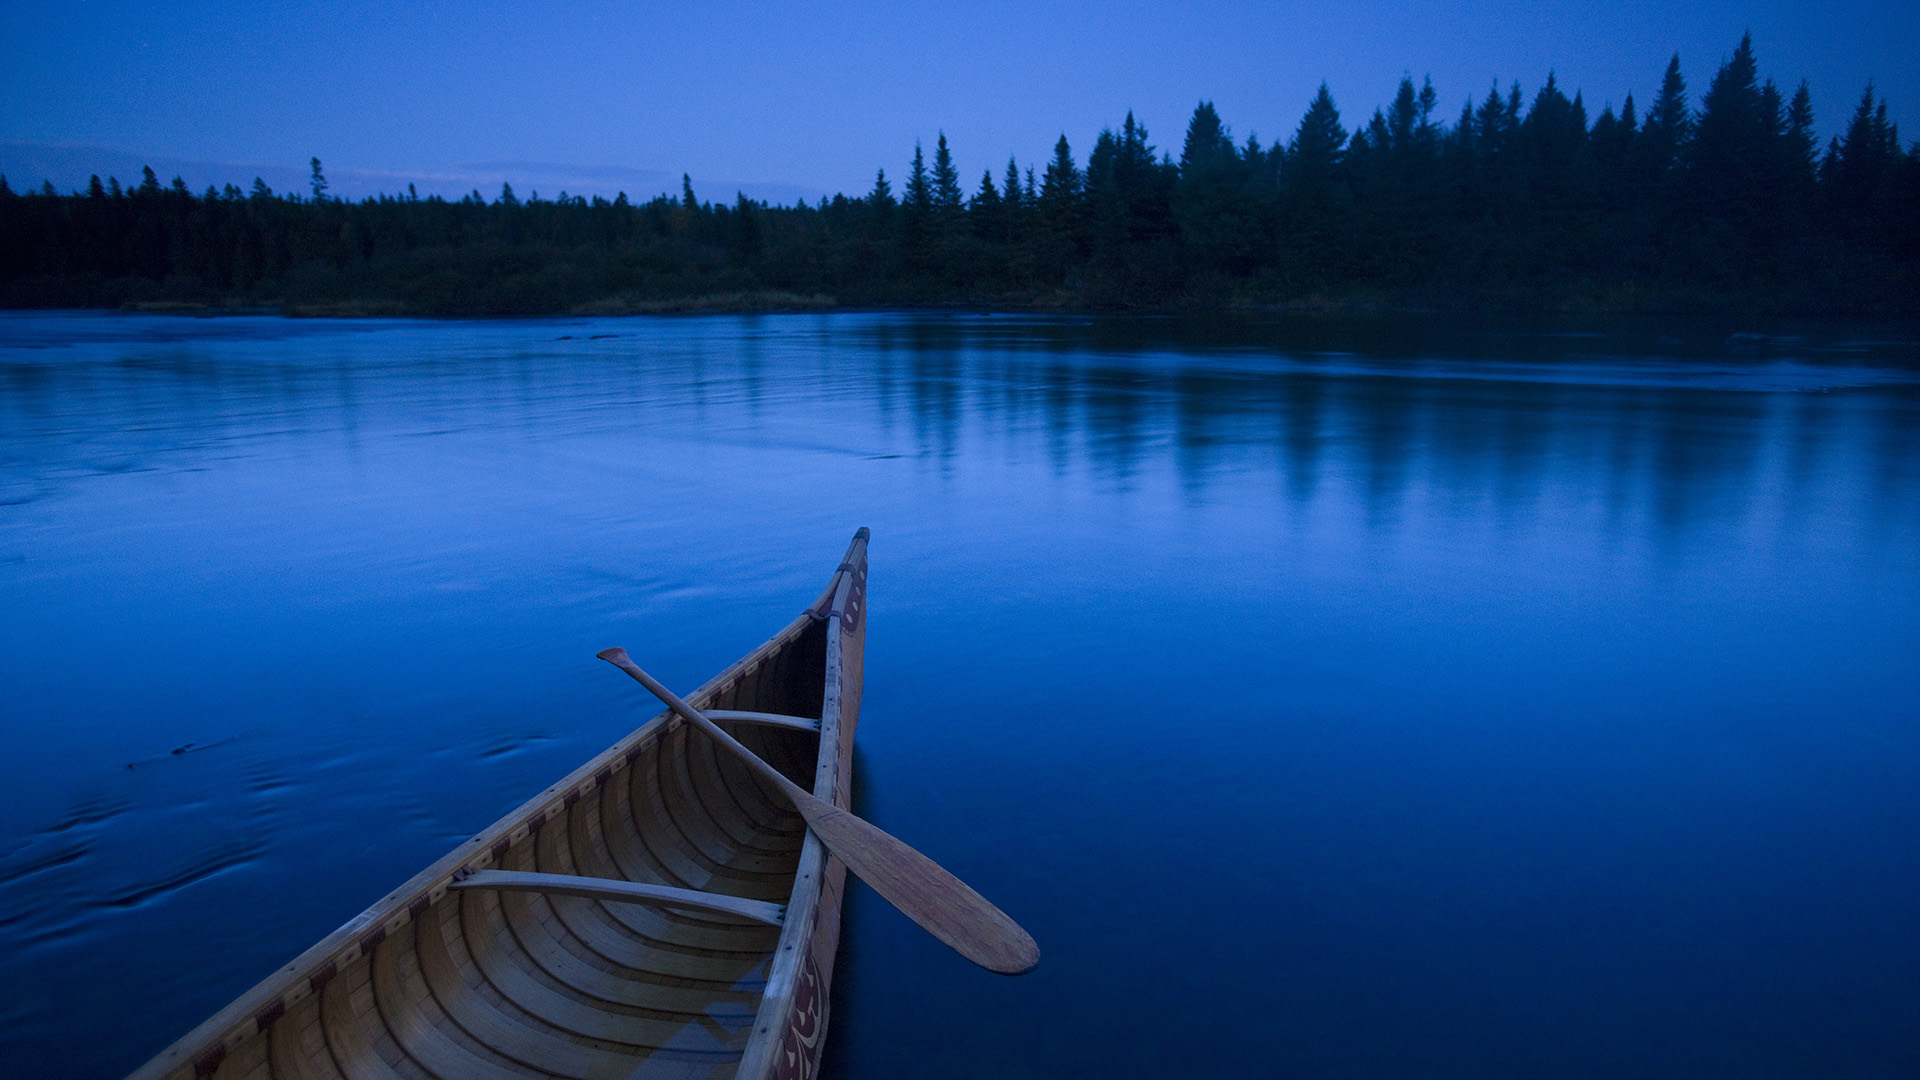 boat in a blue lake wallpapers